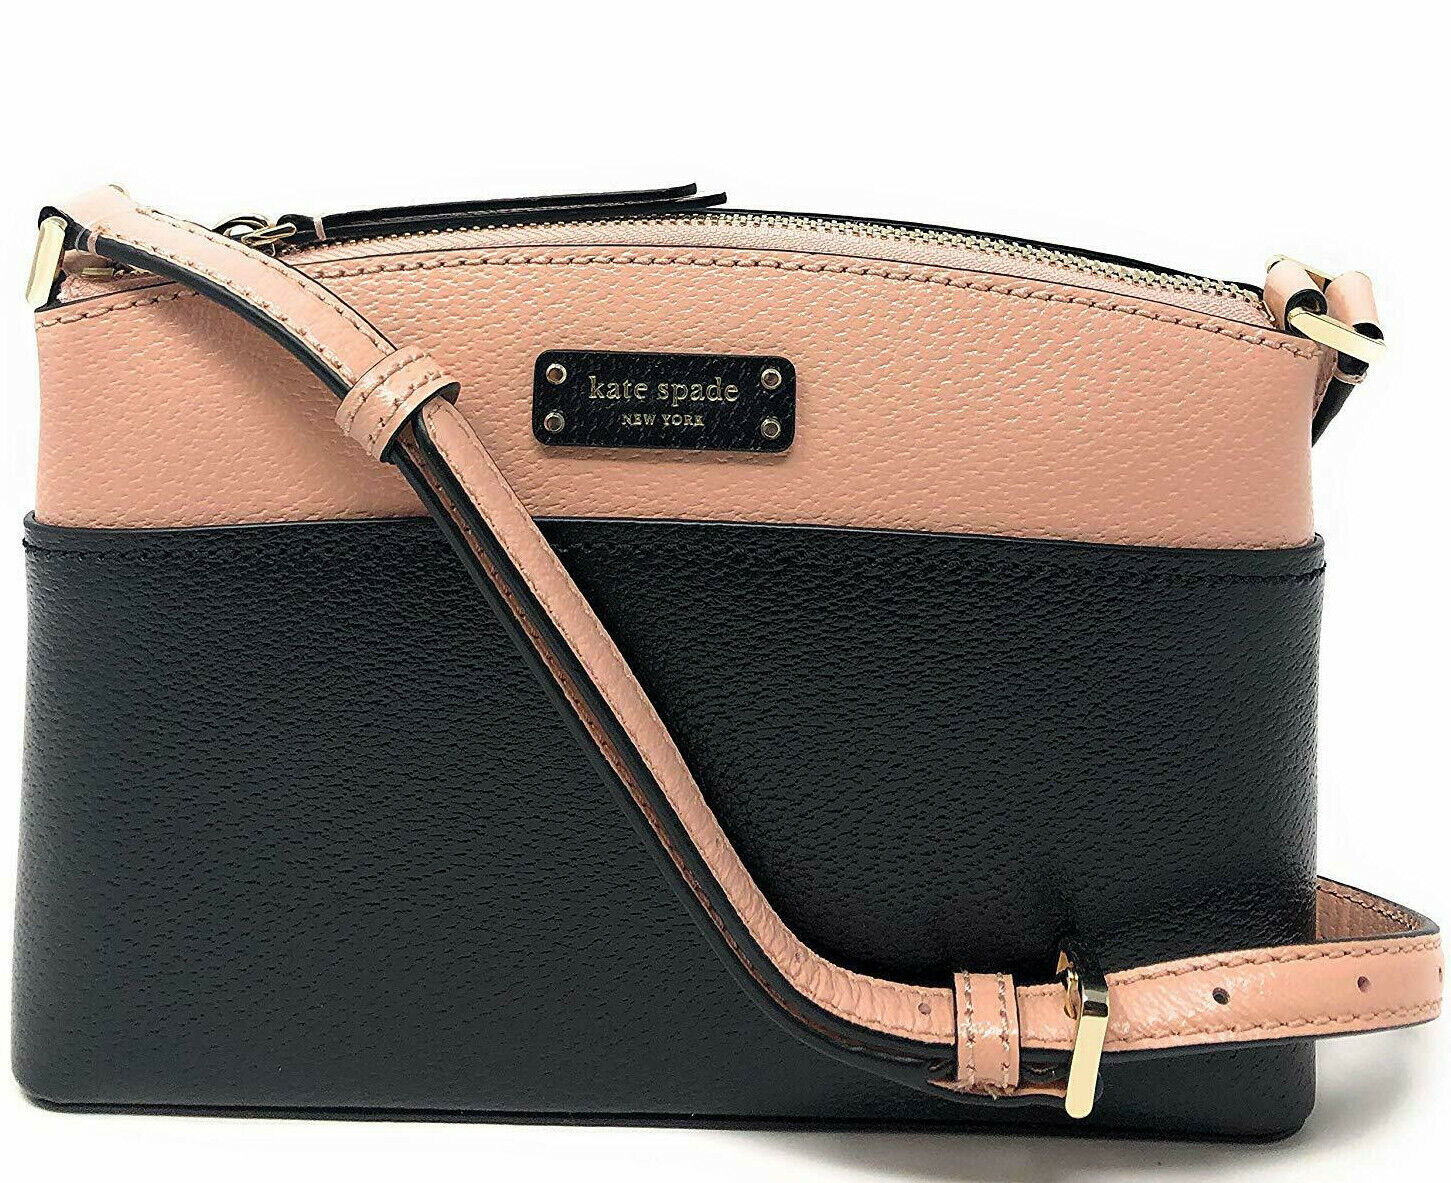 New Kate Spade New York Jeanne Crossbody handbag Warm Vellum